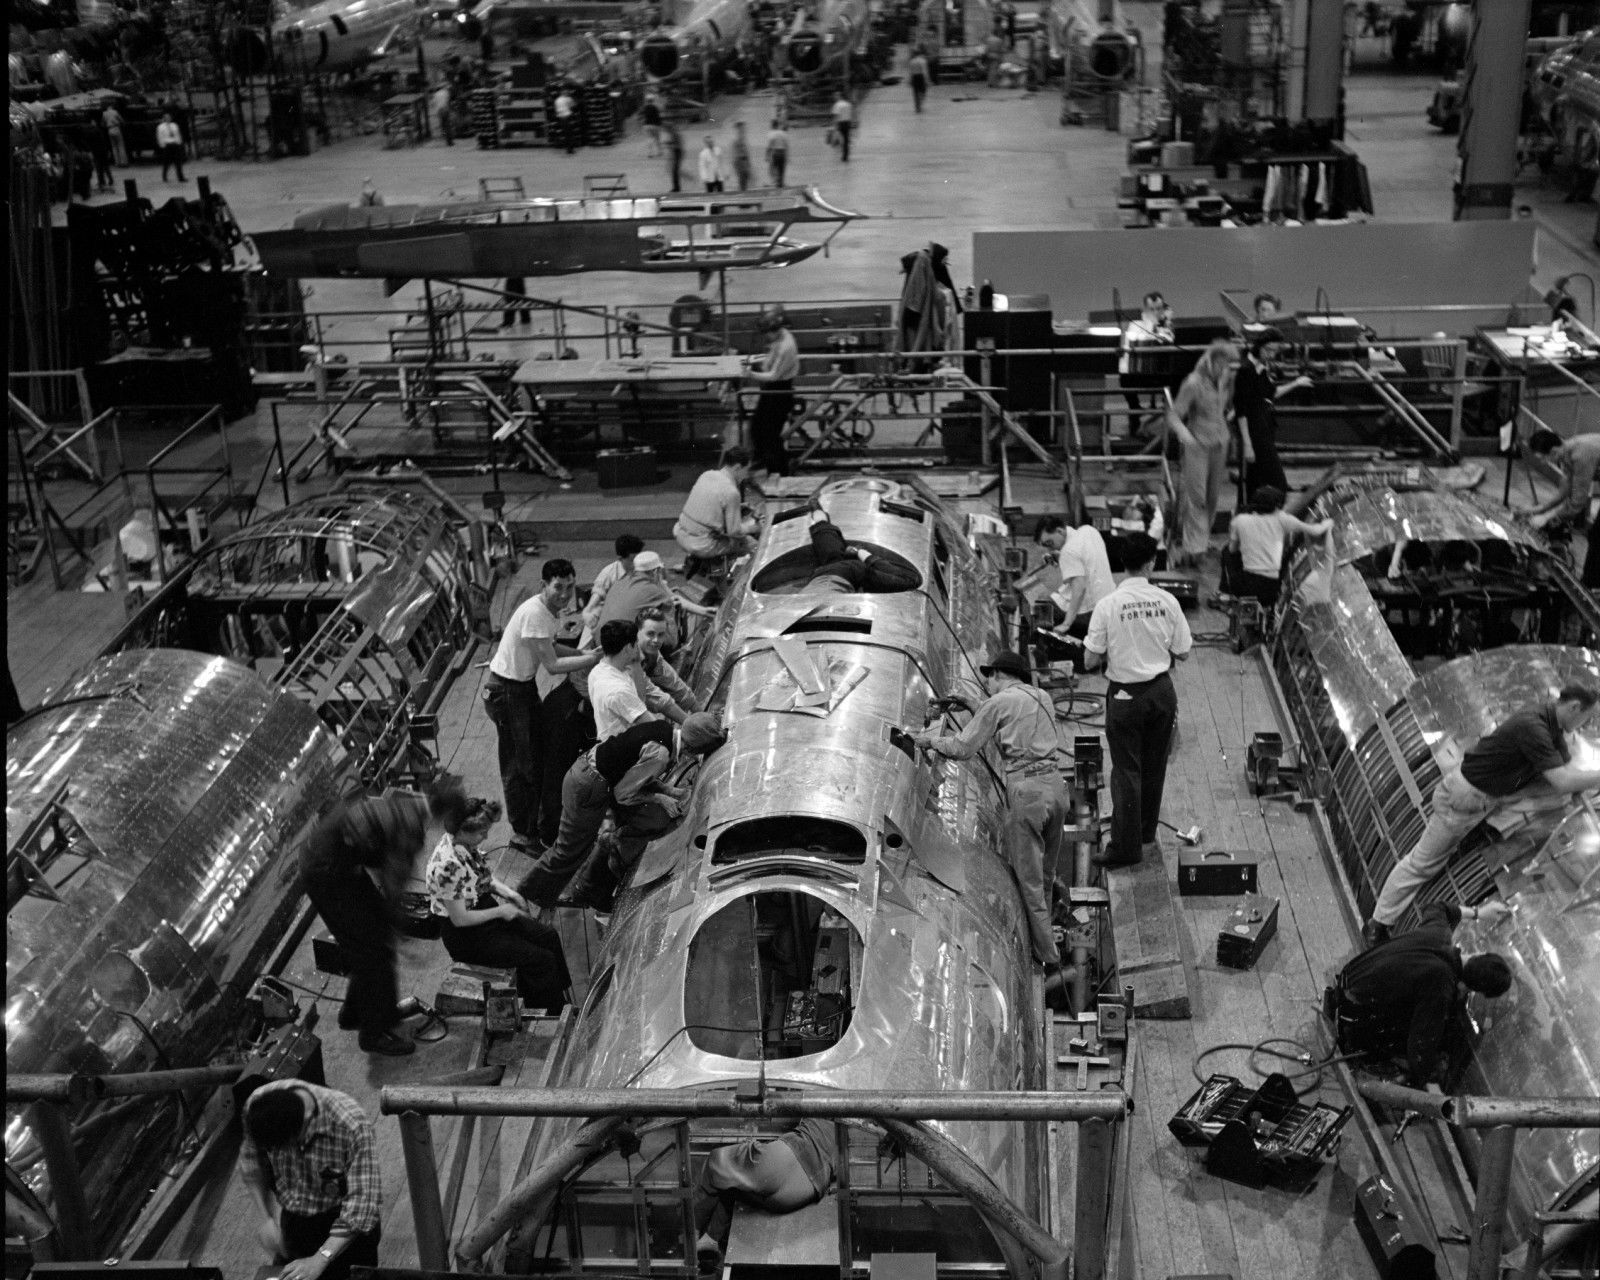 B-17 Boeing Plant Seattle: Fingers Crossed You Haven't Seen Many of These Images Before - https://www.thevintagenews.com/2015/11/30/38831/